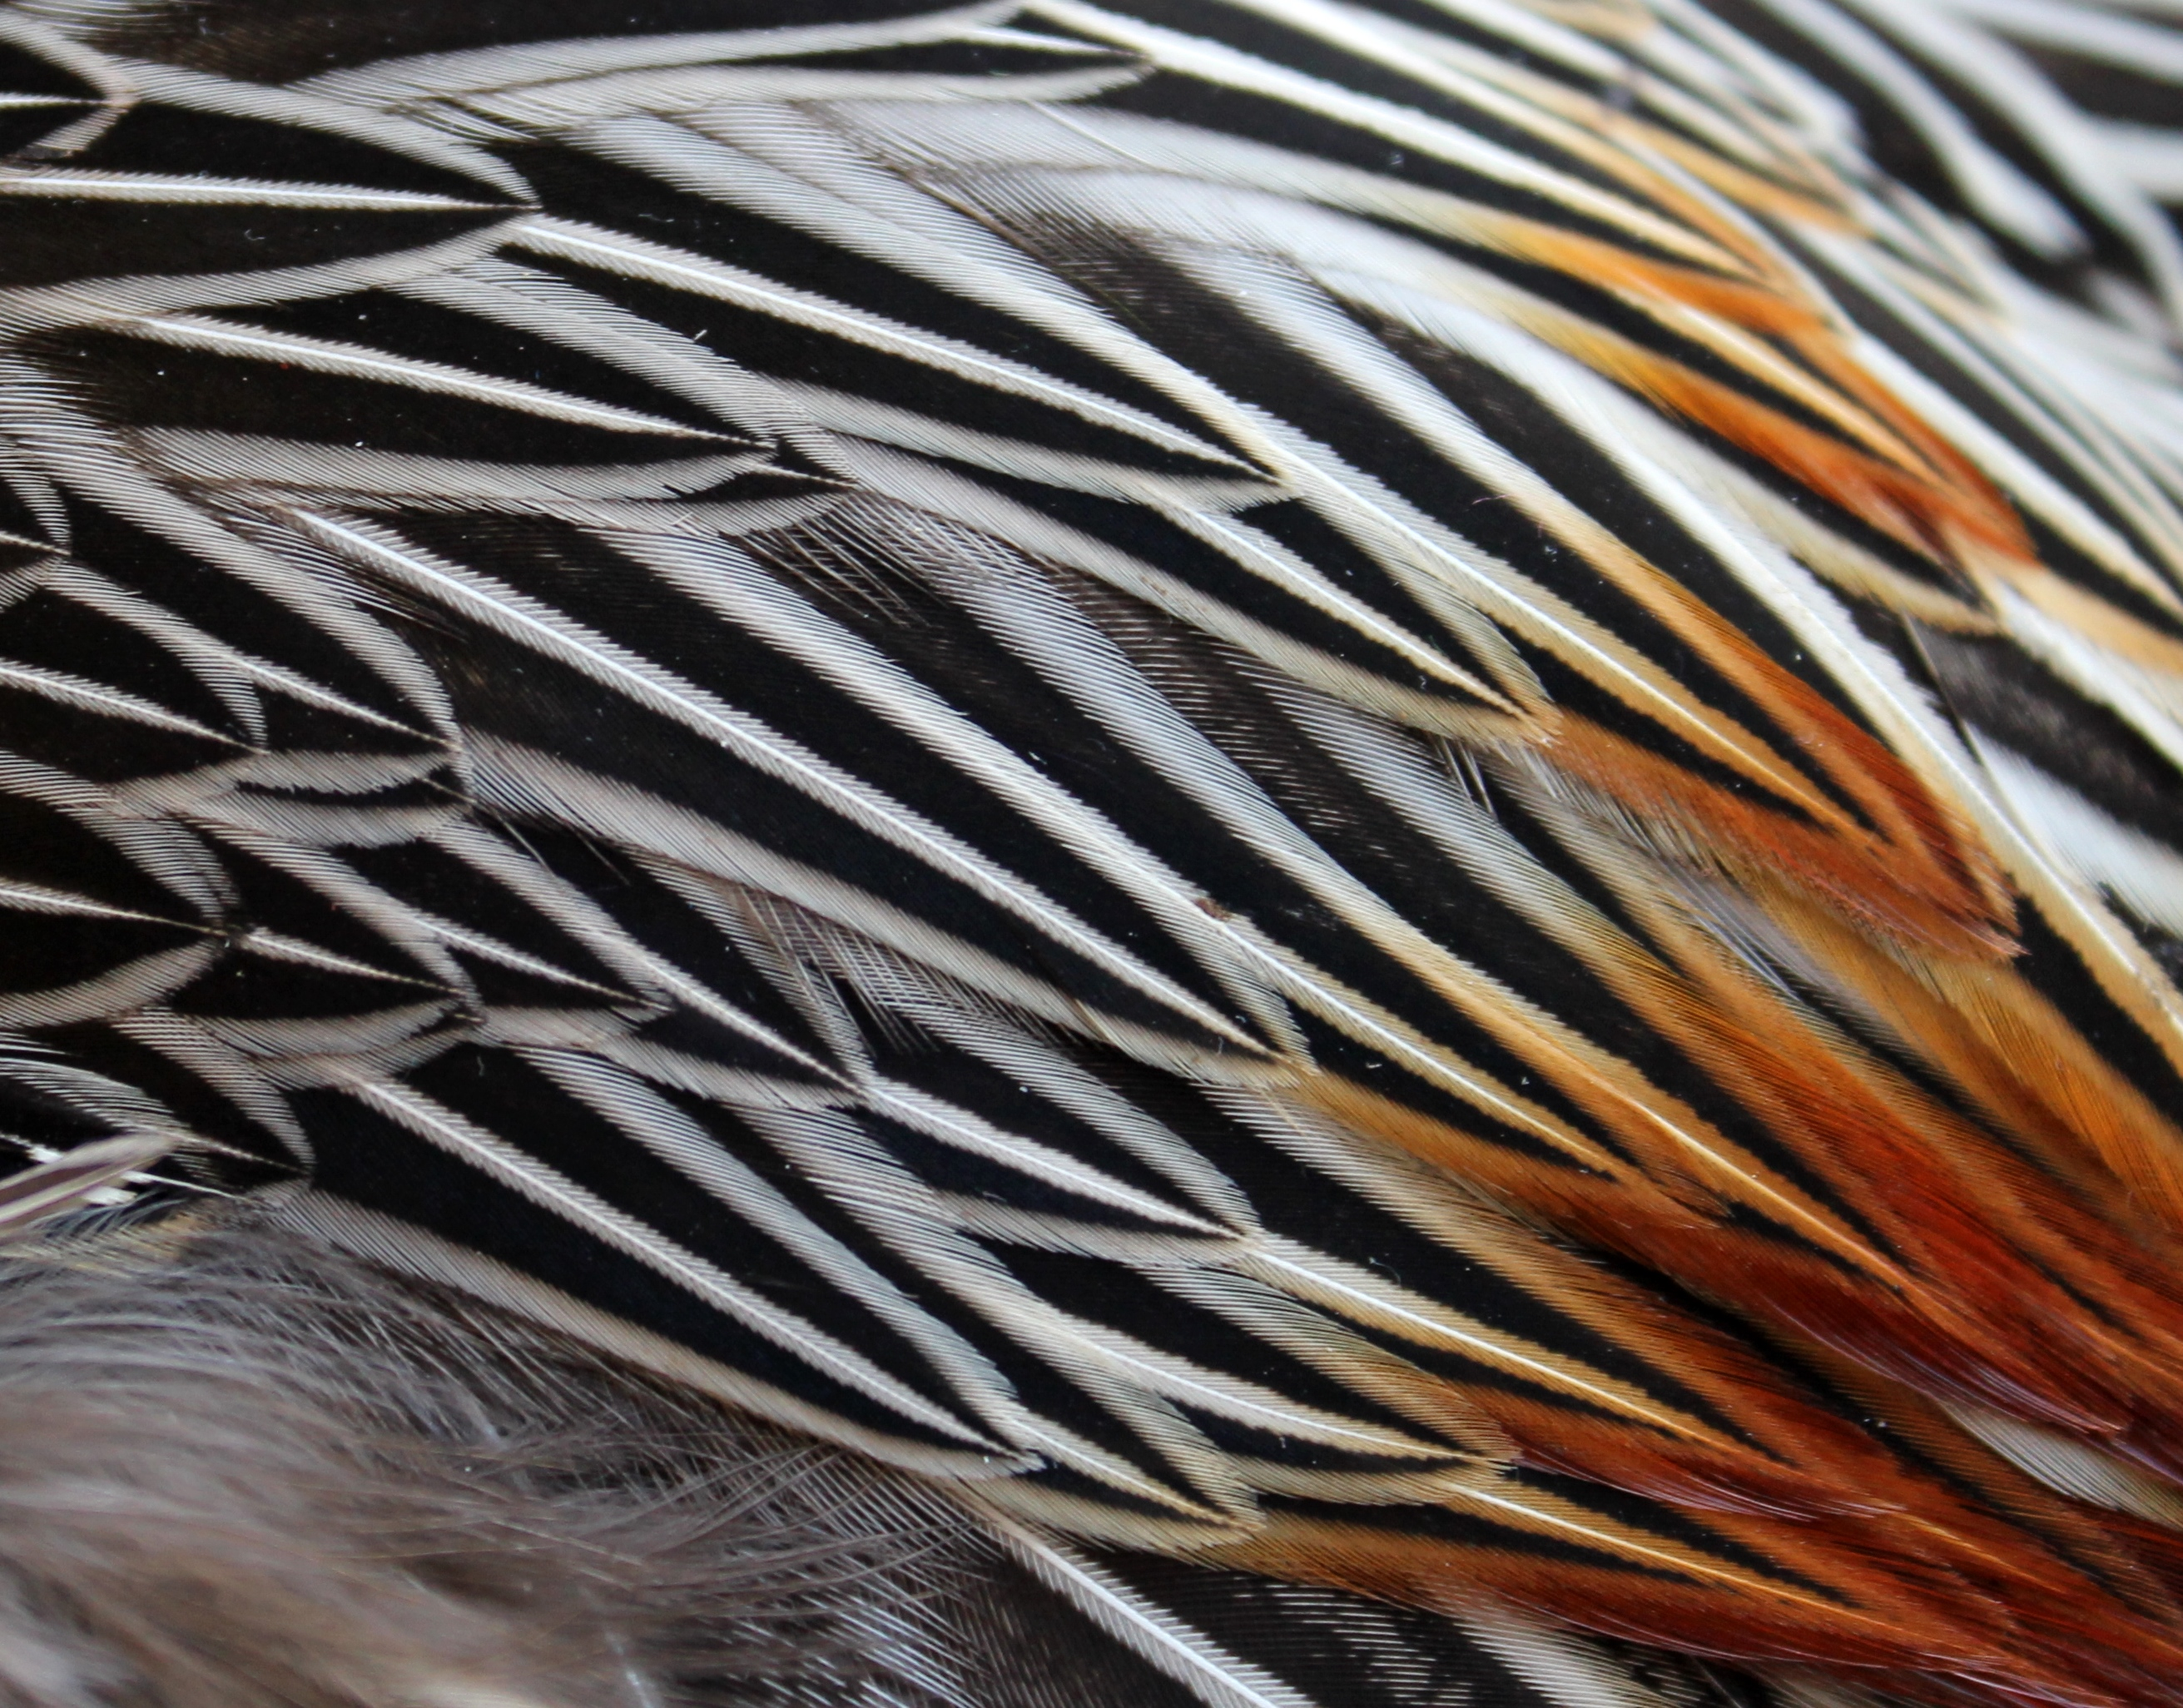 Fly tying jungle cock feathers the